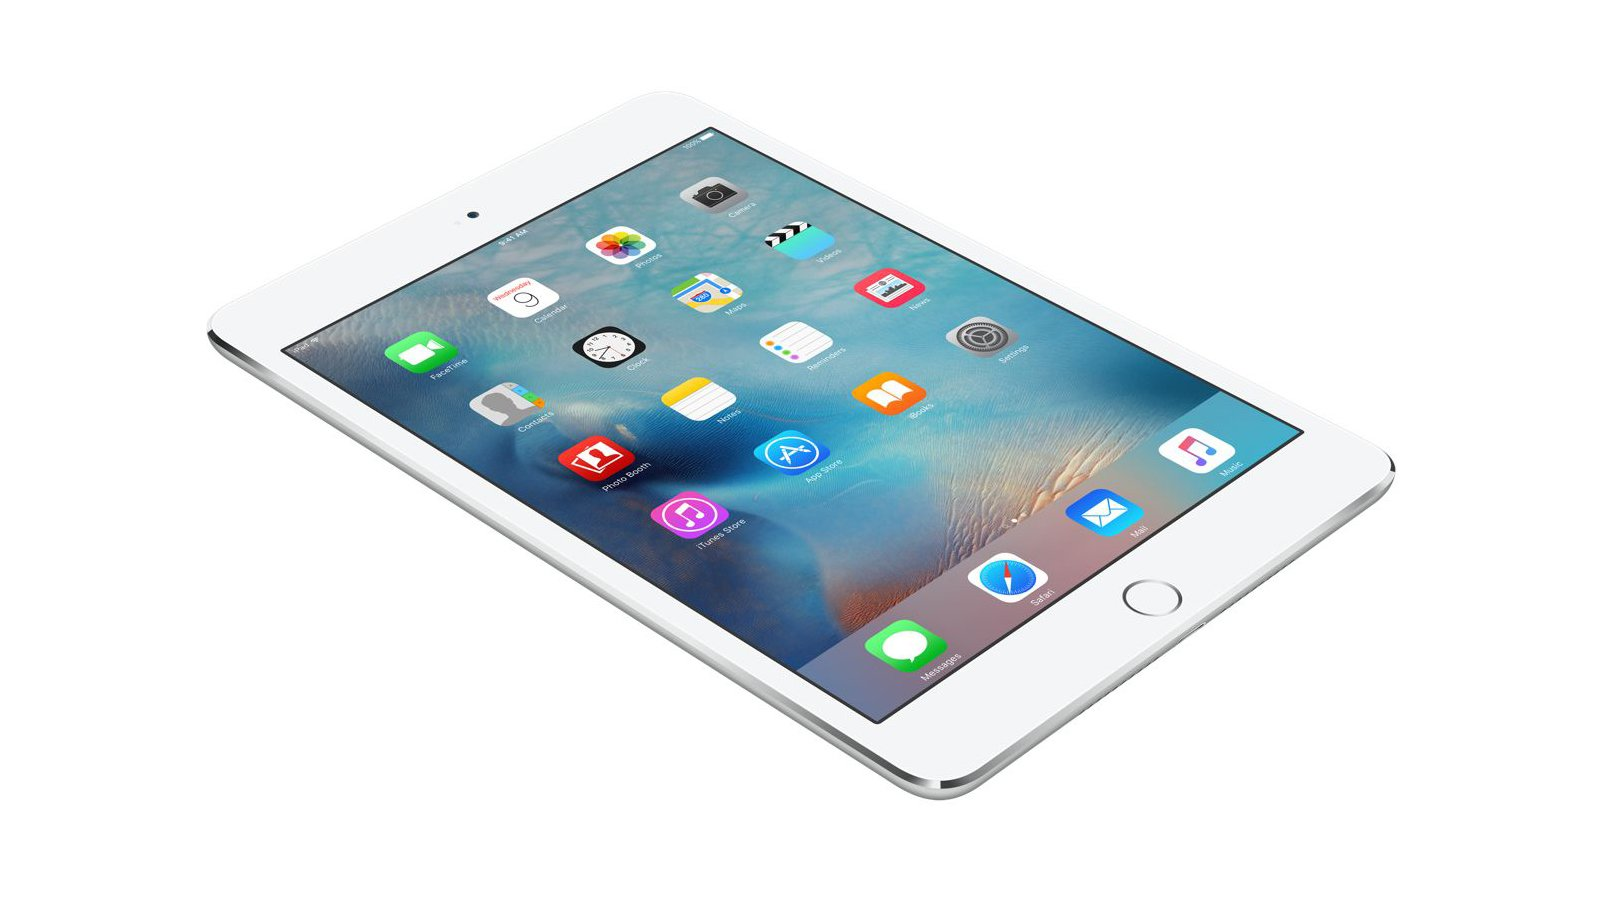 Ipad: IPad Mini 2 Vs IPad Mini 4